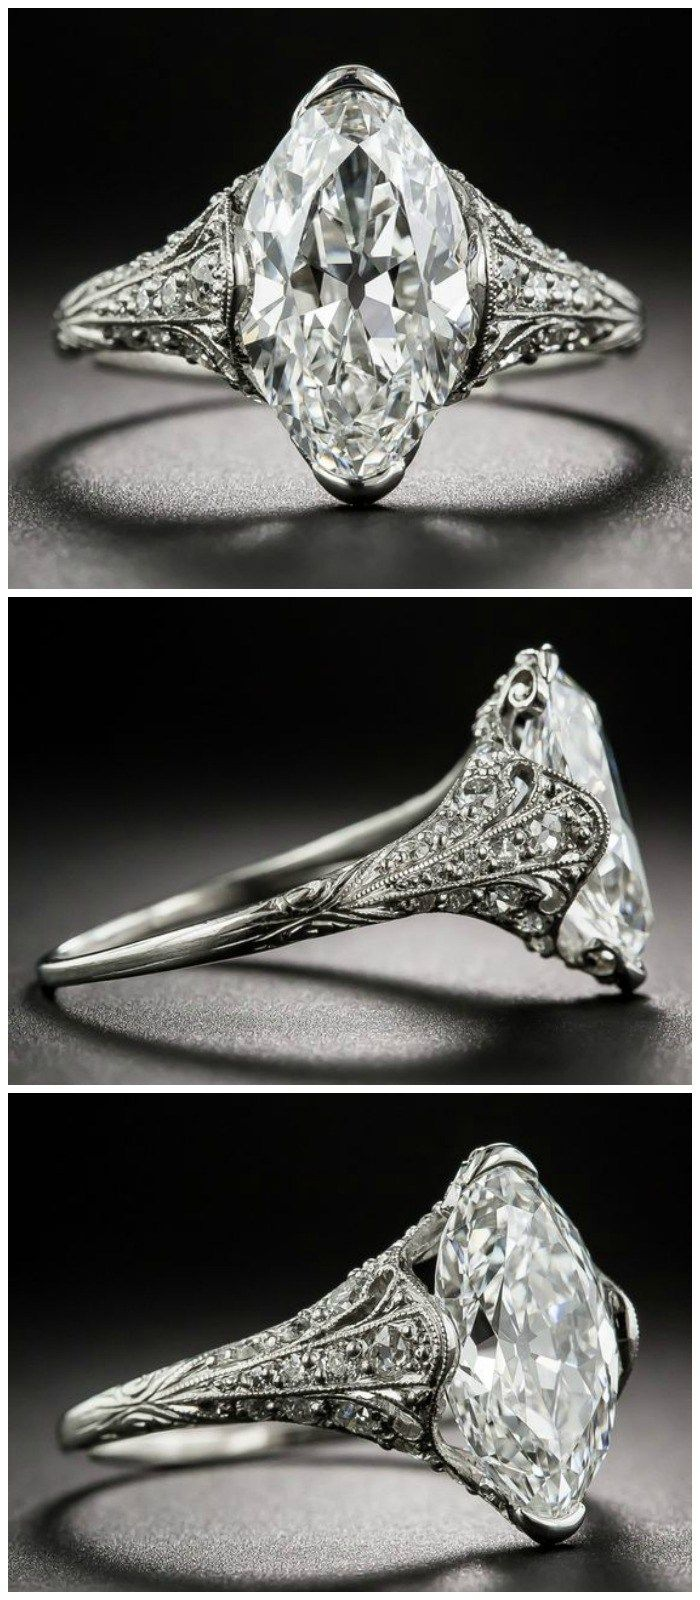 Marquise diamond setting ideas - Let S Look At Antique Engagement Rings